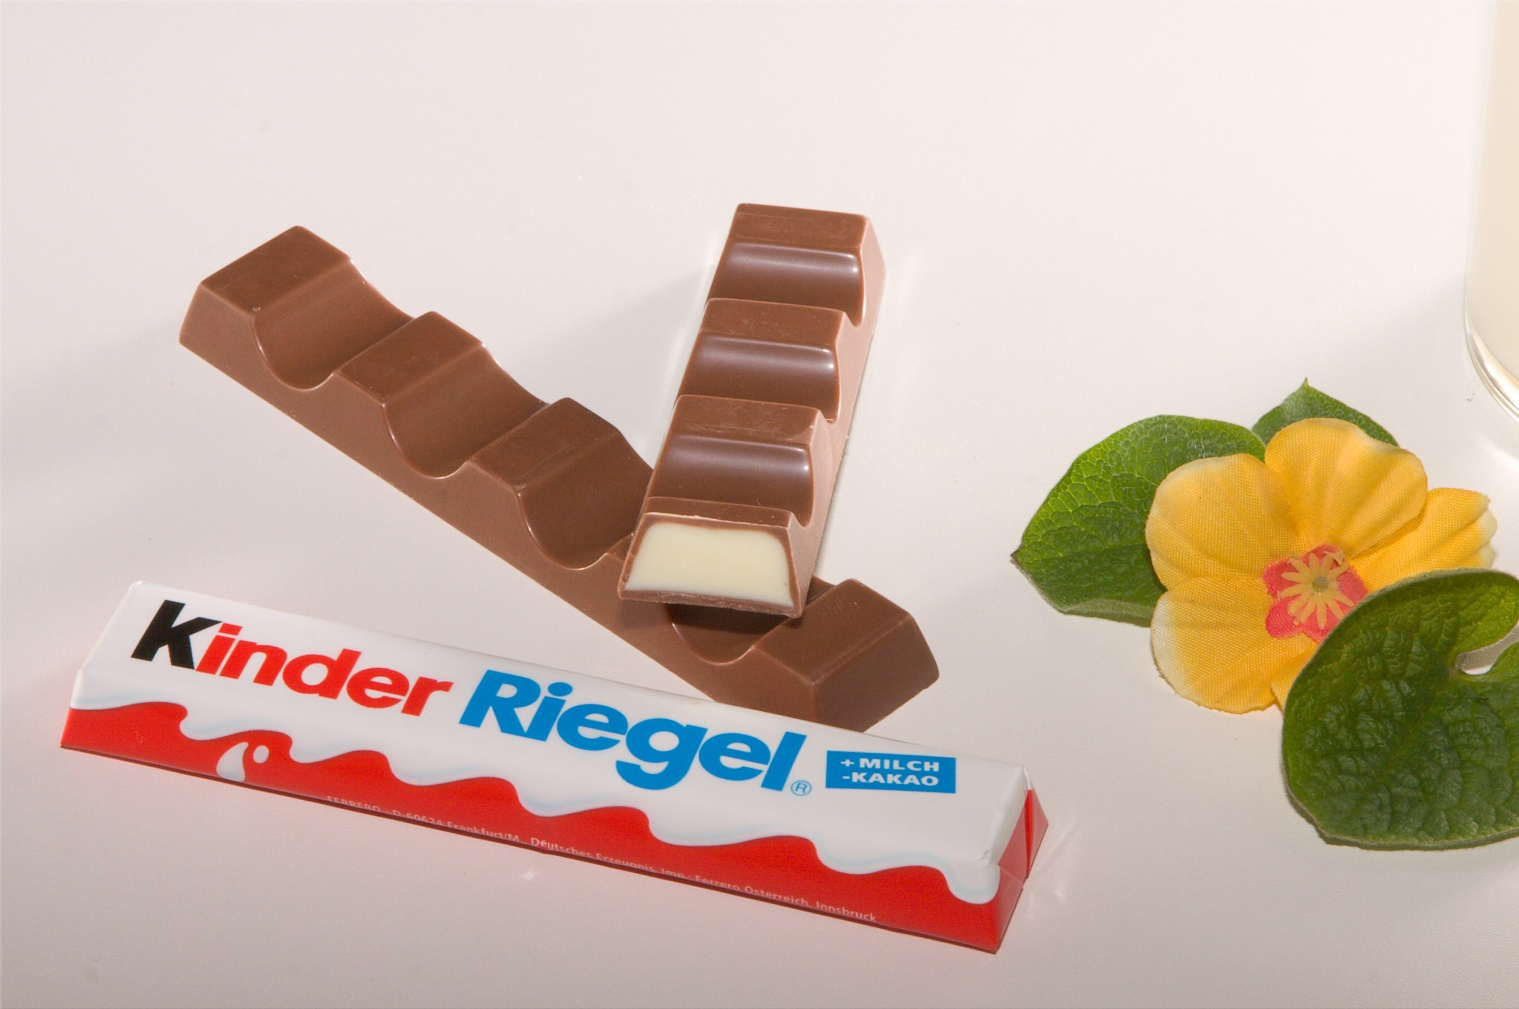 Description kinder riegel ak